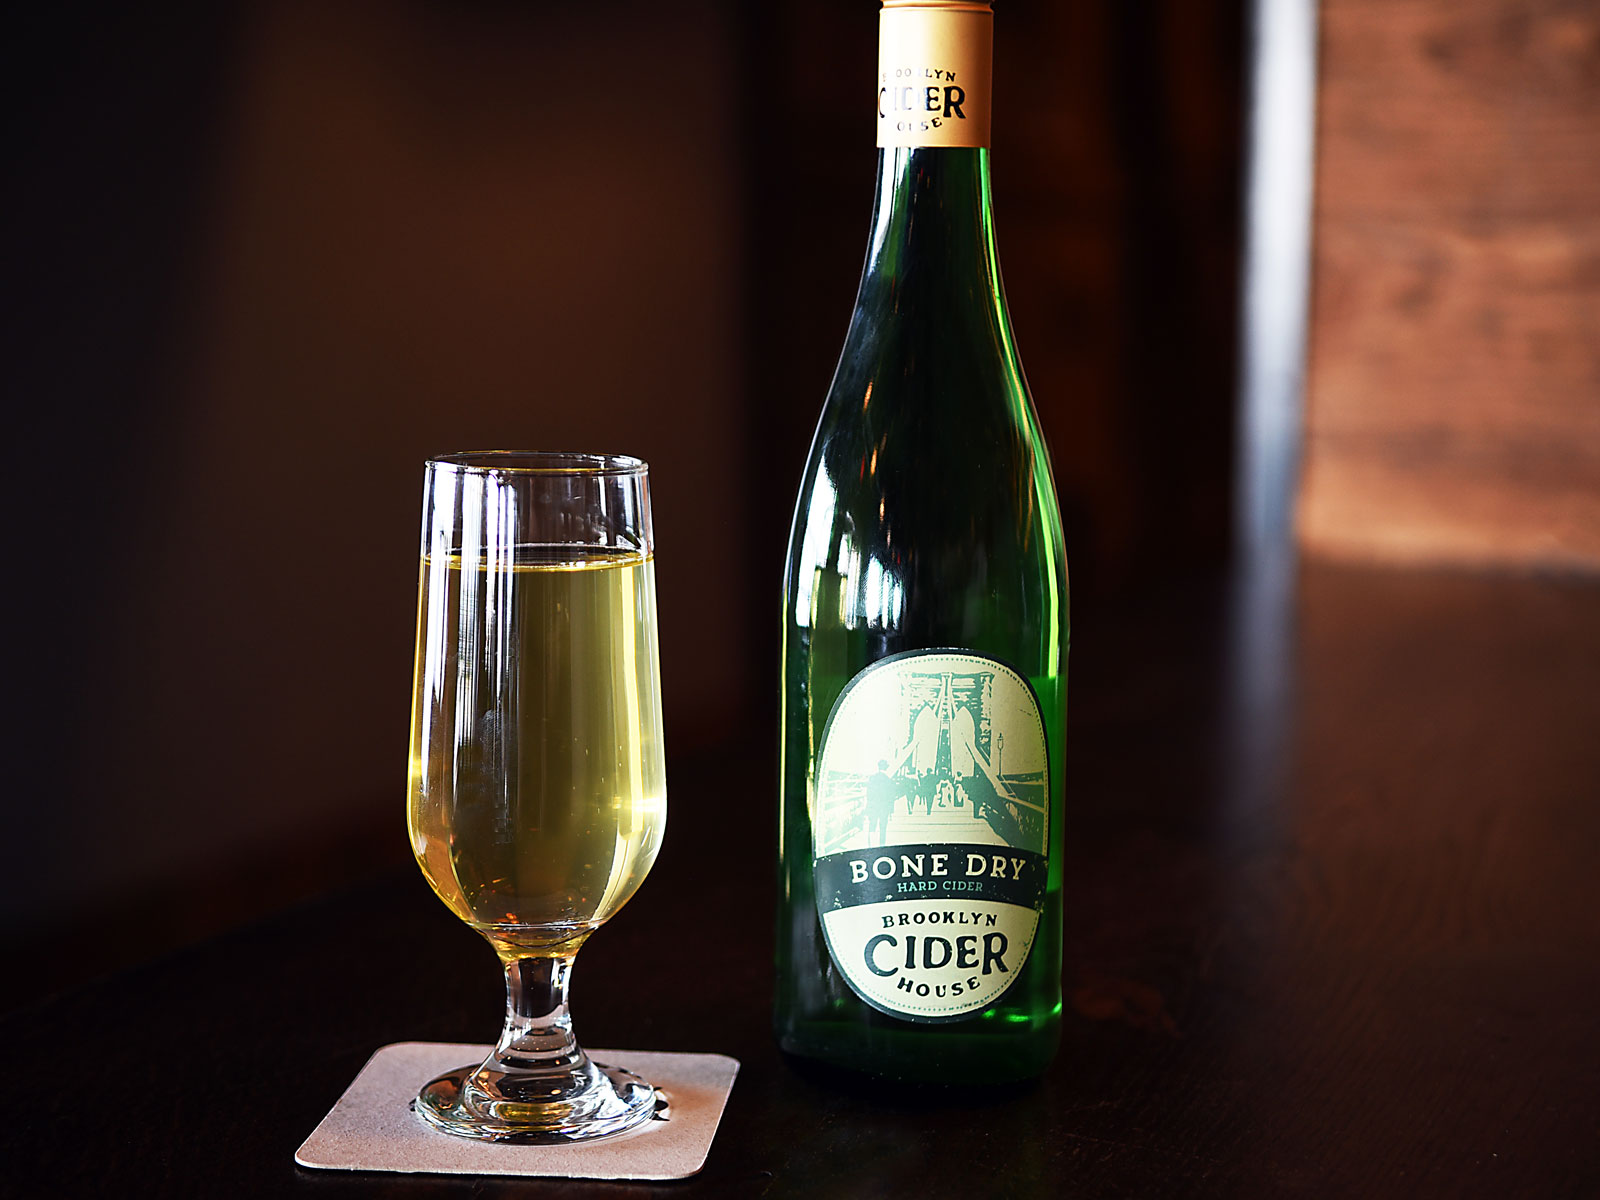 Brooklyn Cider House Is the Basque Cidery America Needs